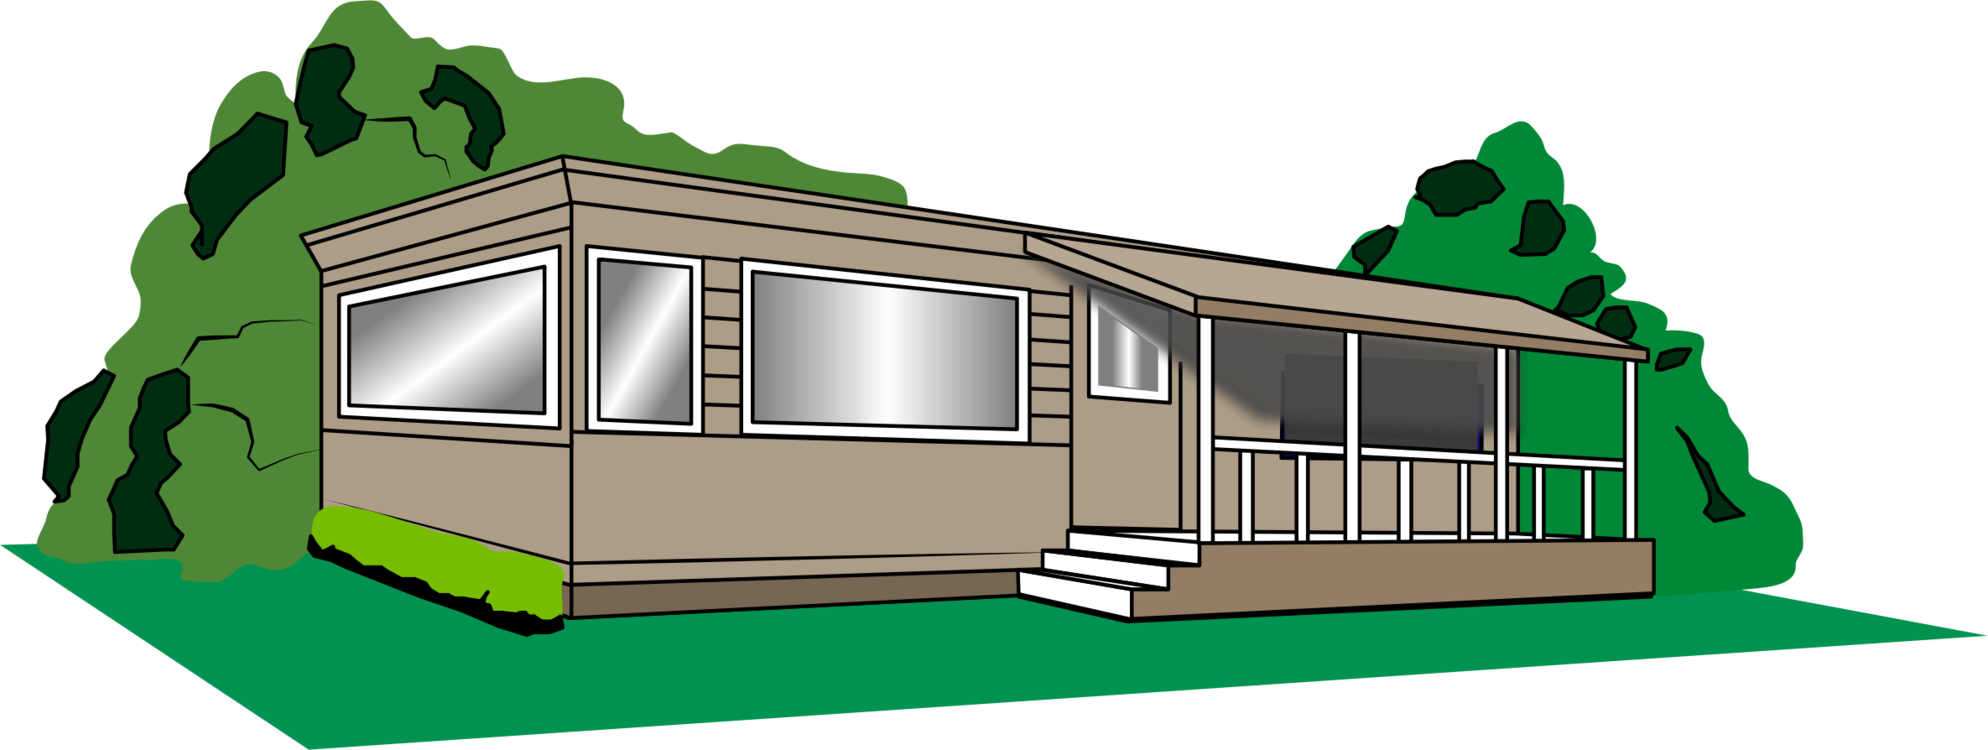 Mobile home House Campervan Park Logo free commercial clipart ... on how to stuff homes, how to get a mansion, home free homes, how to get on housing, how to get cars,